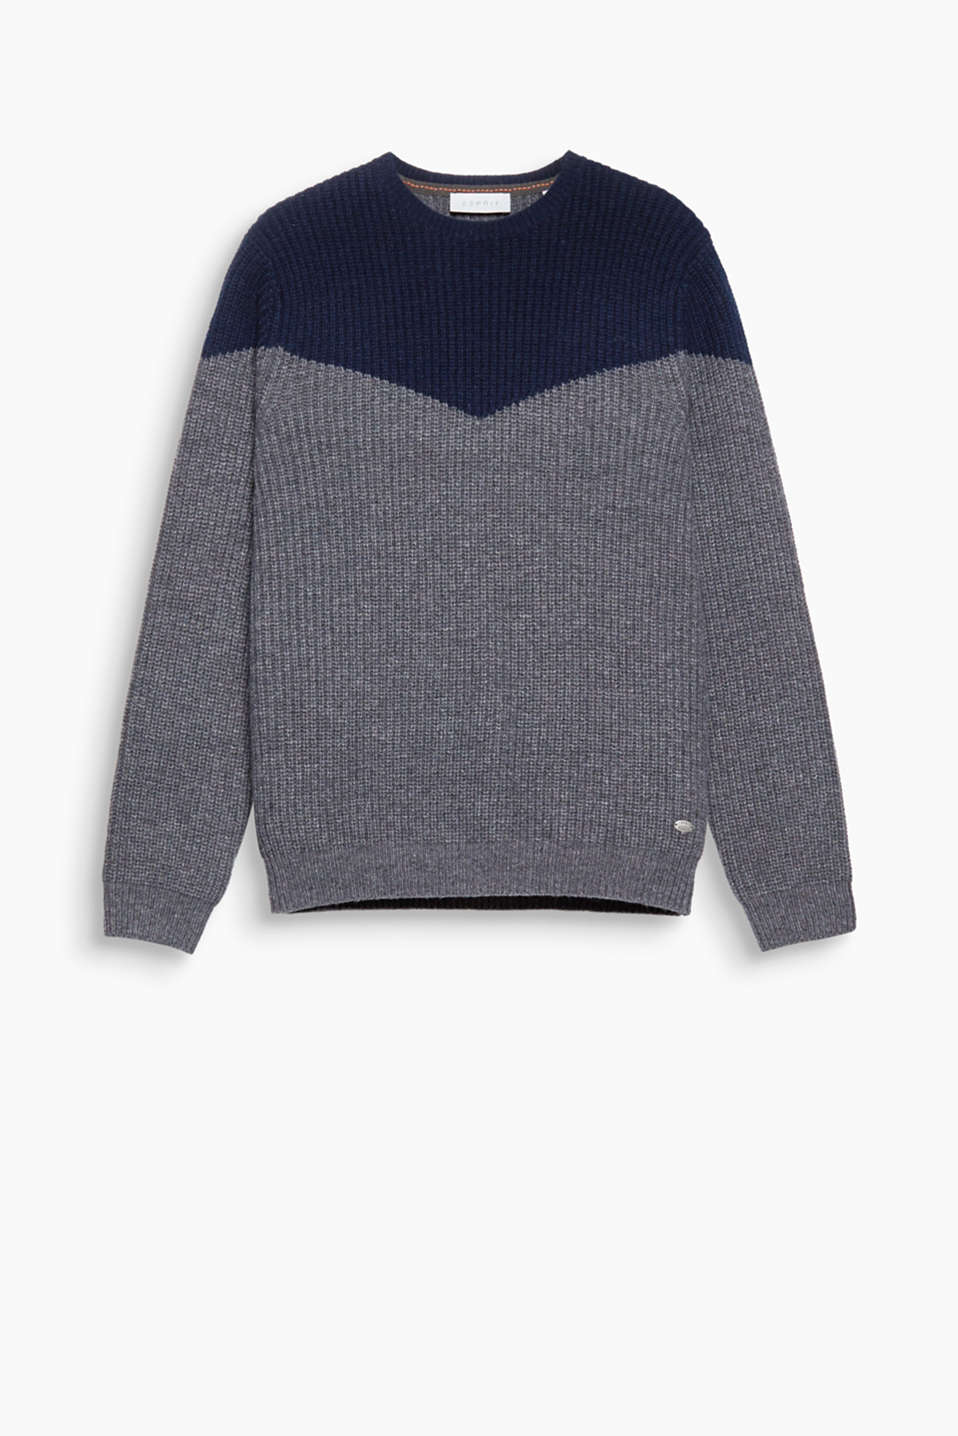 The cool colour blocking and striking rib stitch make this jumper a casual, stylish highlight. We like!